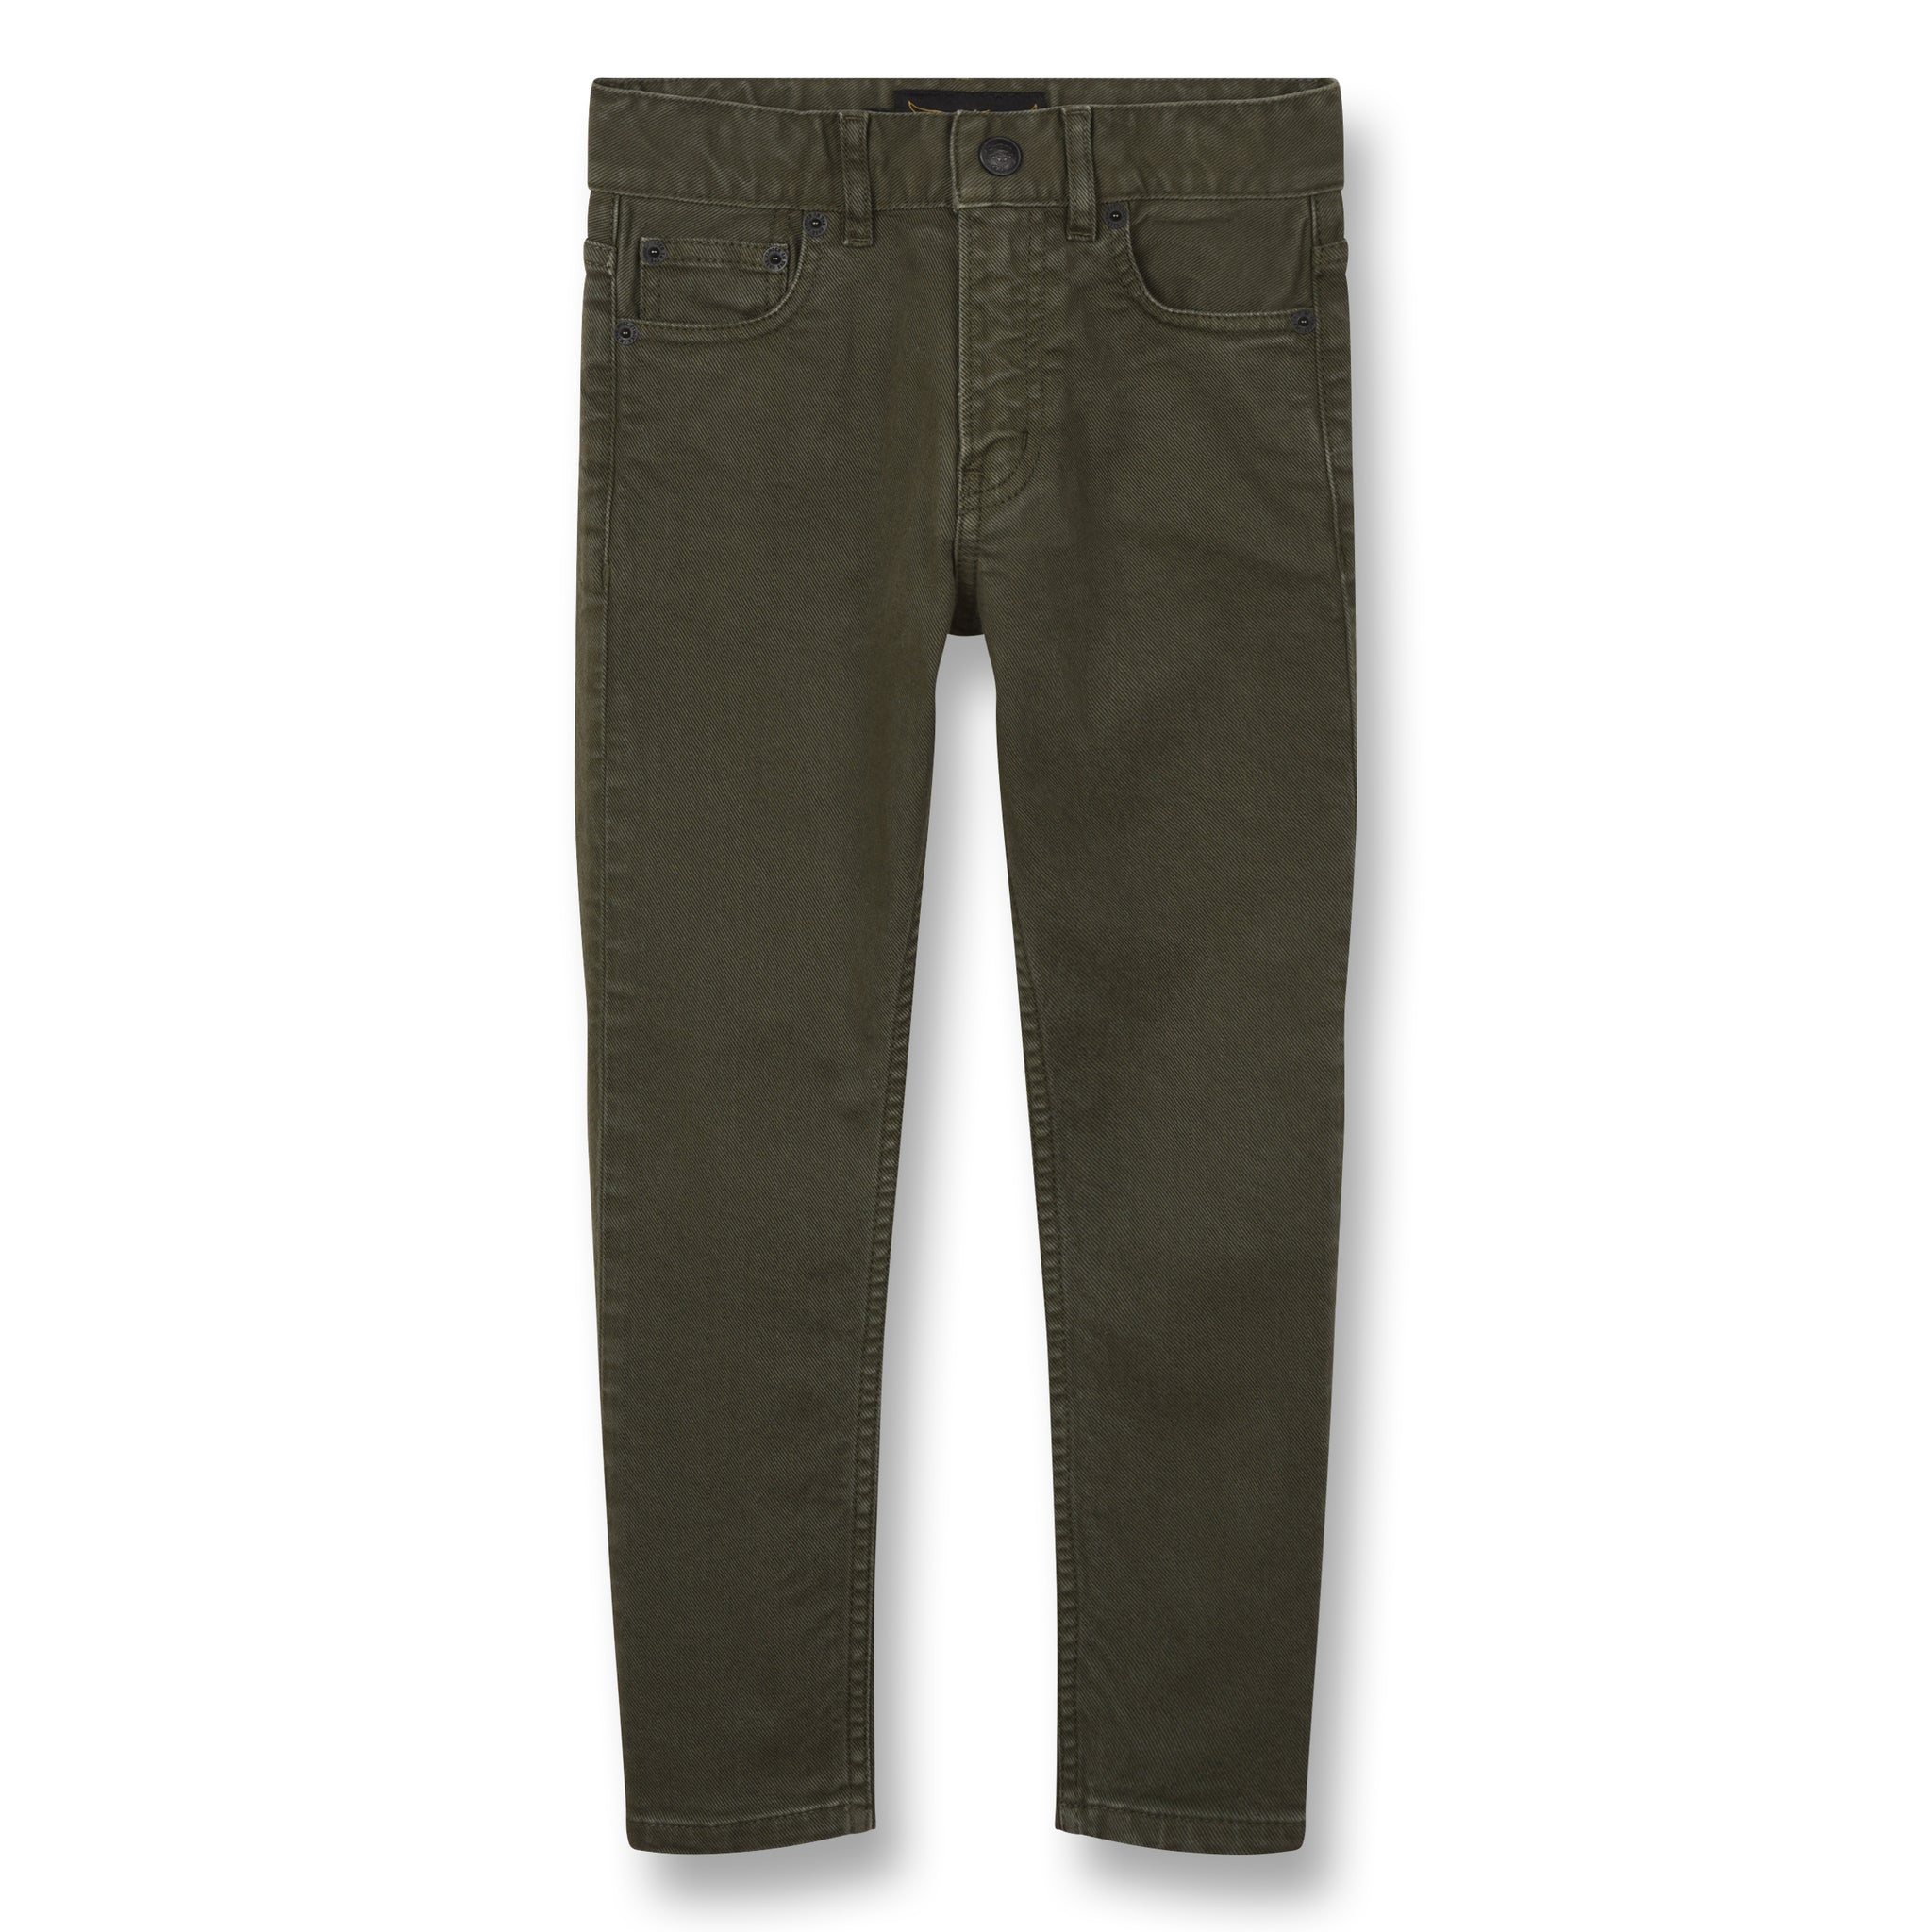 NEW NORTON Khaki - 5 Pocket Straight Fit Jeans 1